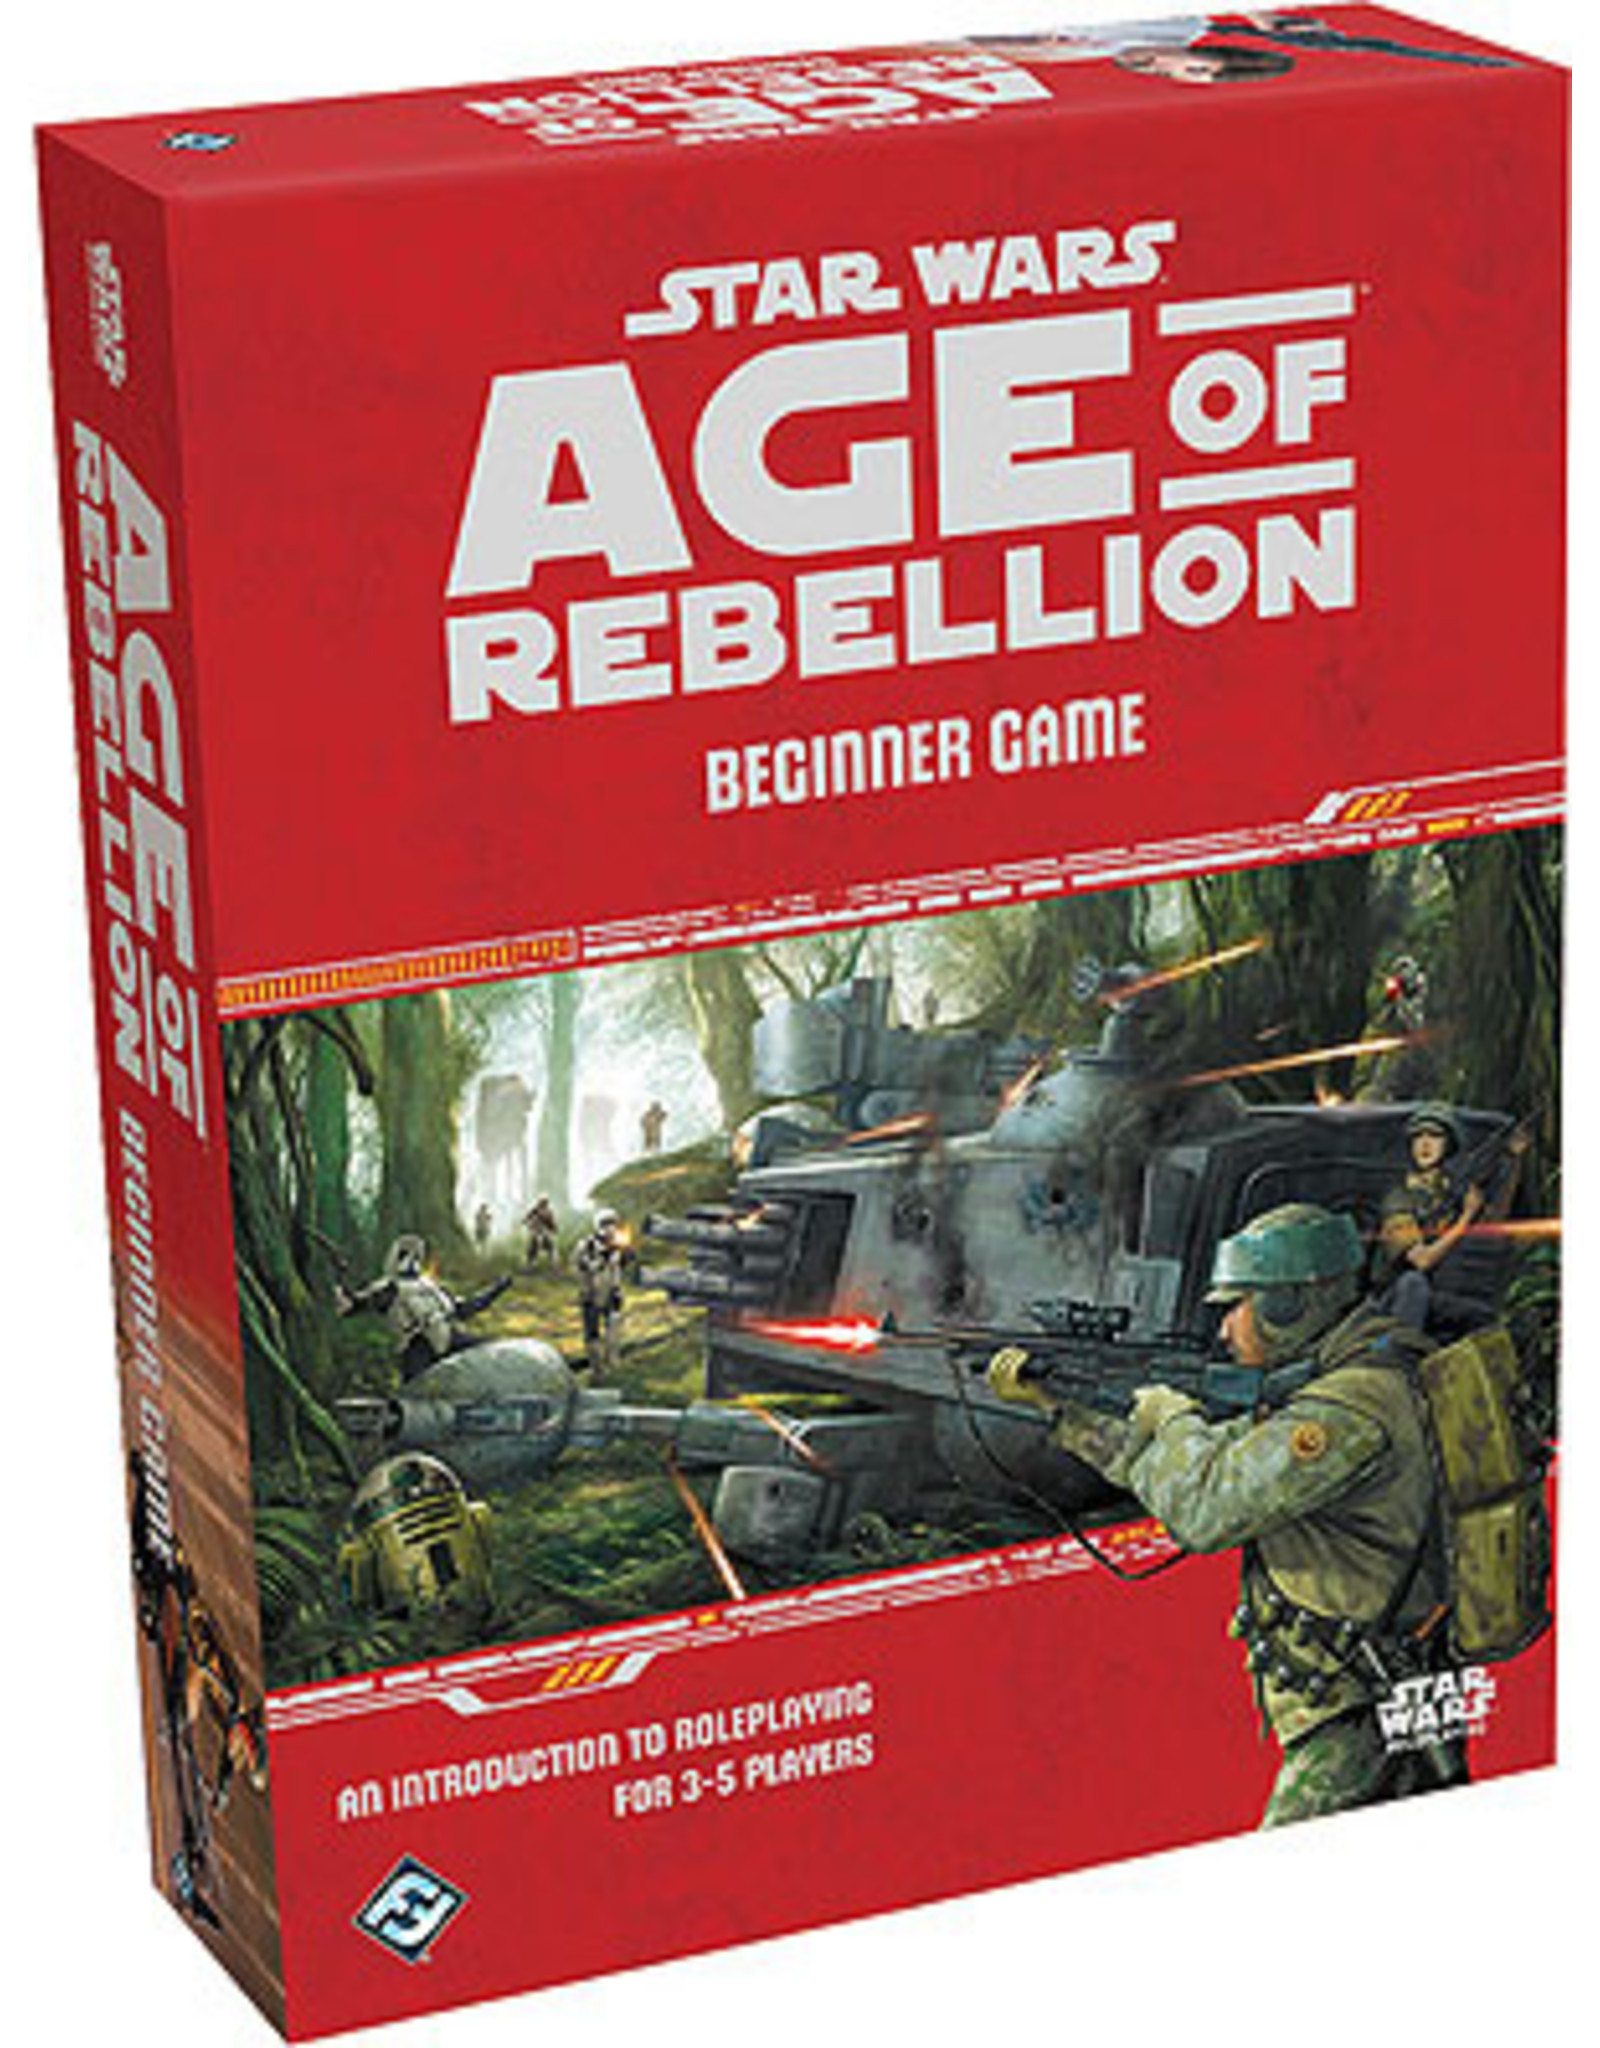 Role Playing Star Wars: Age of Rebellion Beginner Game